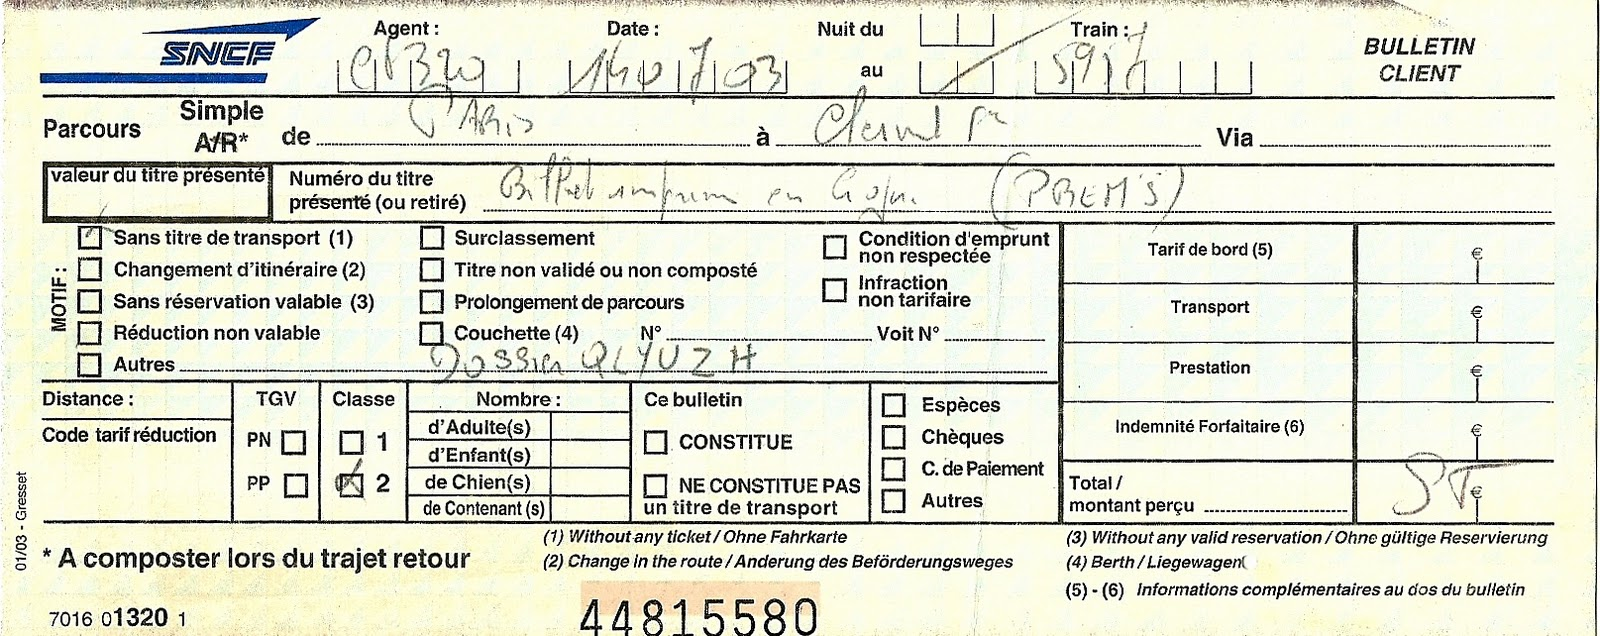 Billet de train clermont ferrand paris